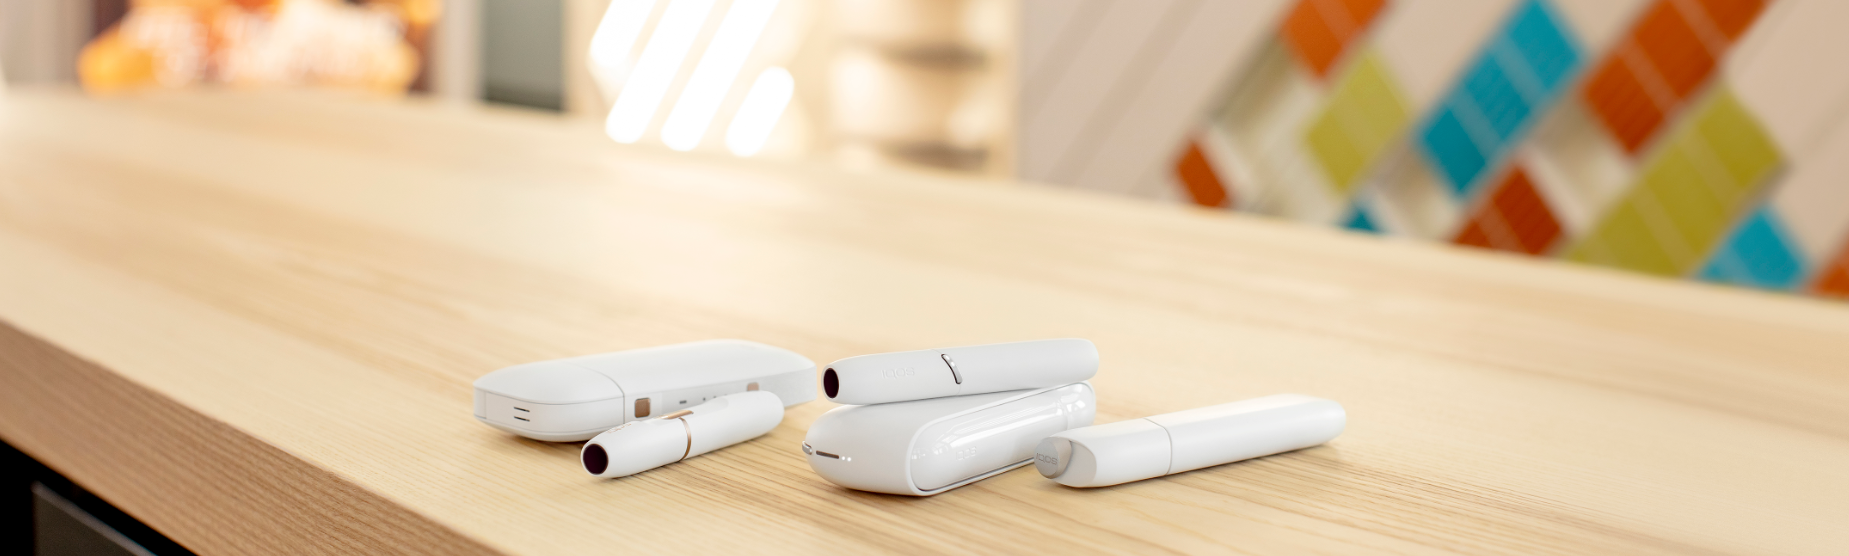 IQOS SPECIAL OFFER!